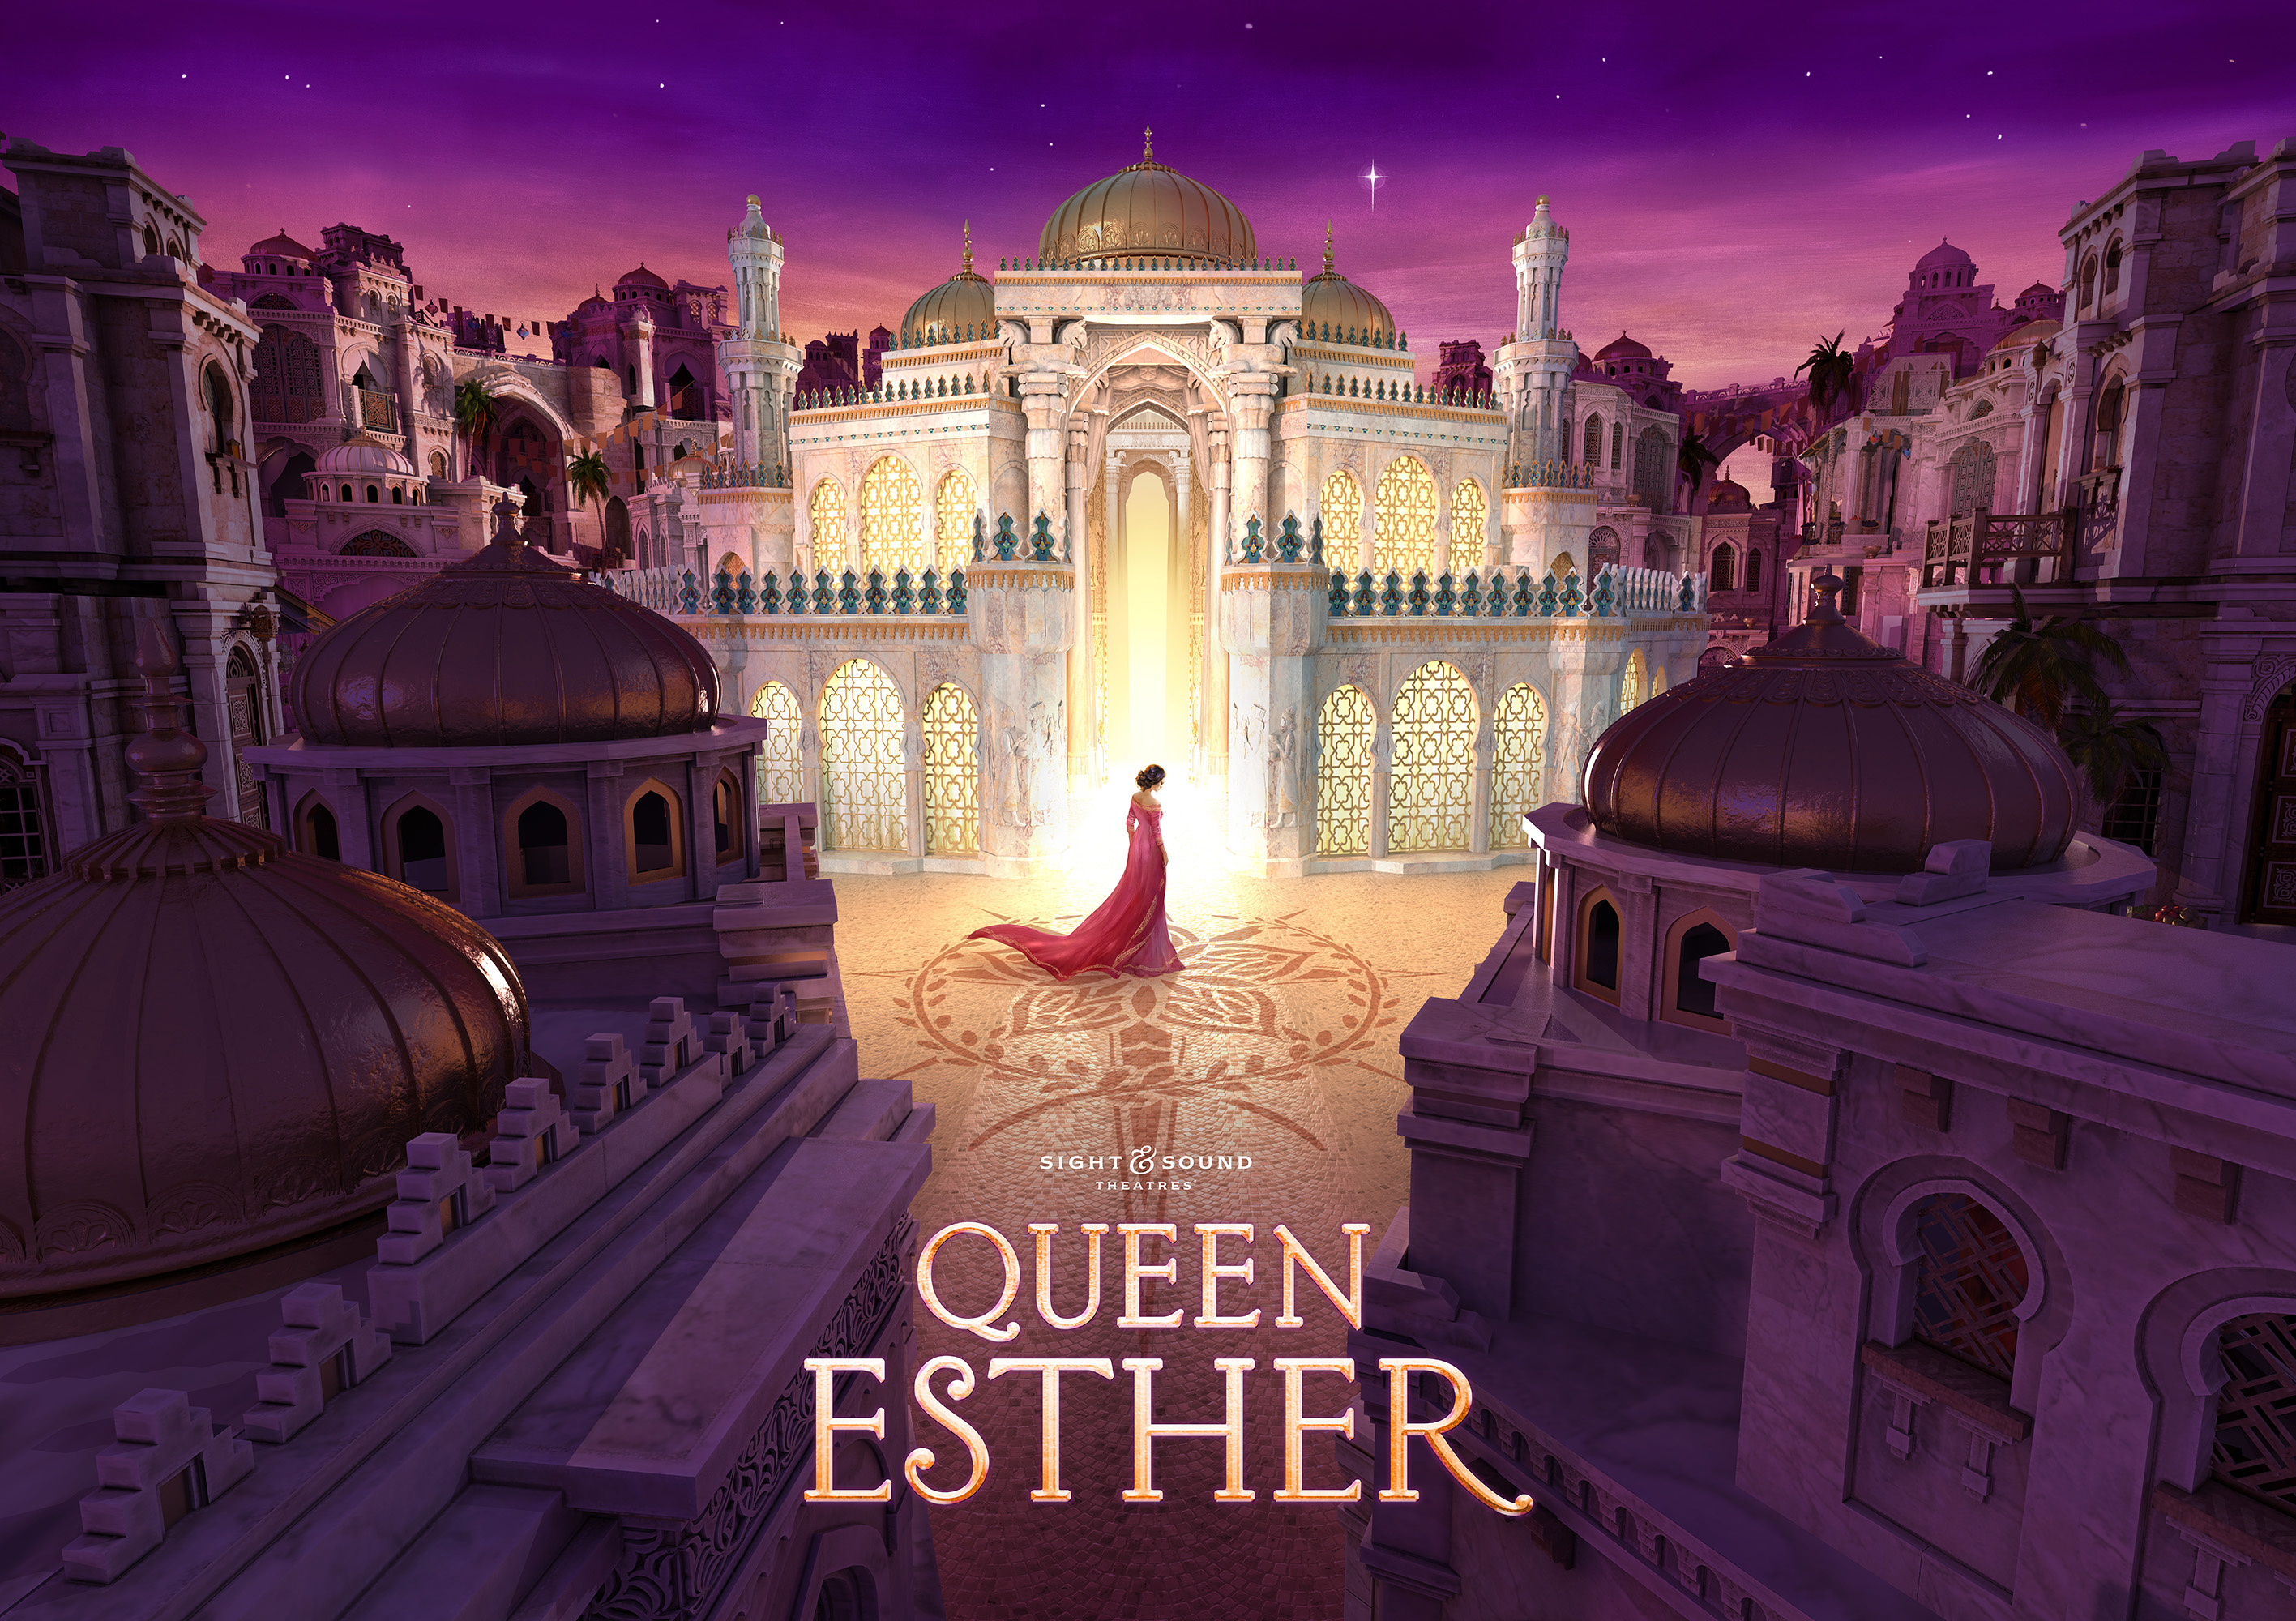 SIGHT & SOUND THEATRES® TO BRING 'QUEEN ESTHER' TO LIFE ON STAGE IN 2020